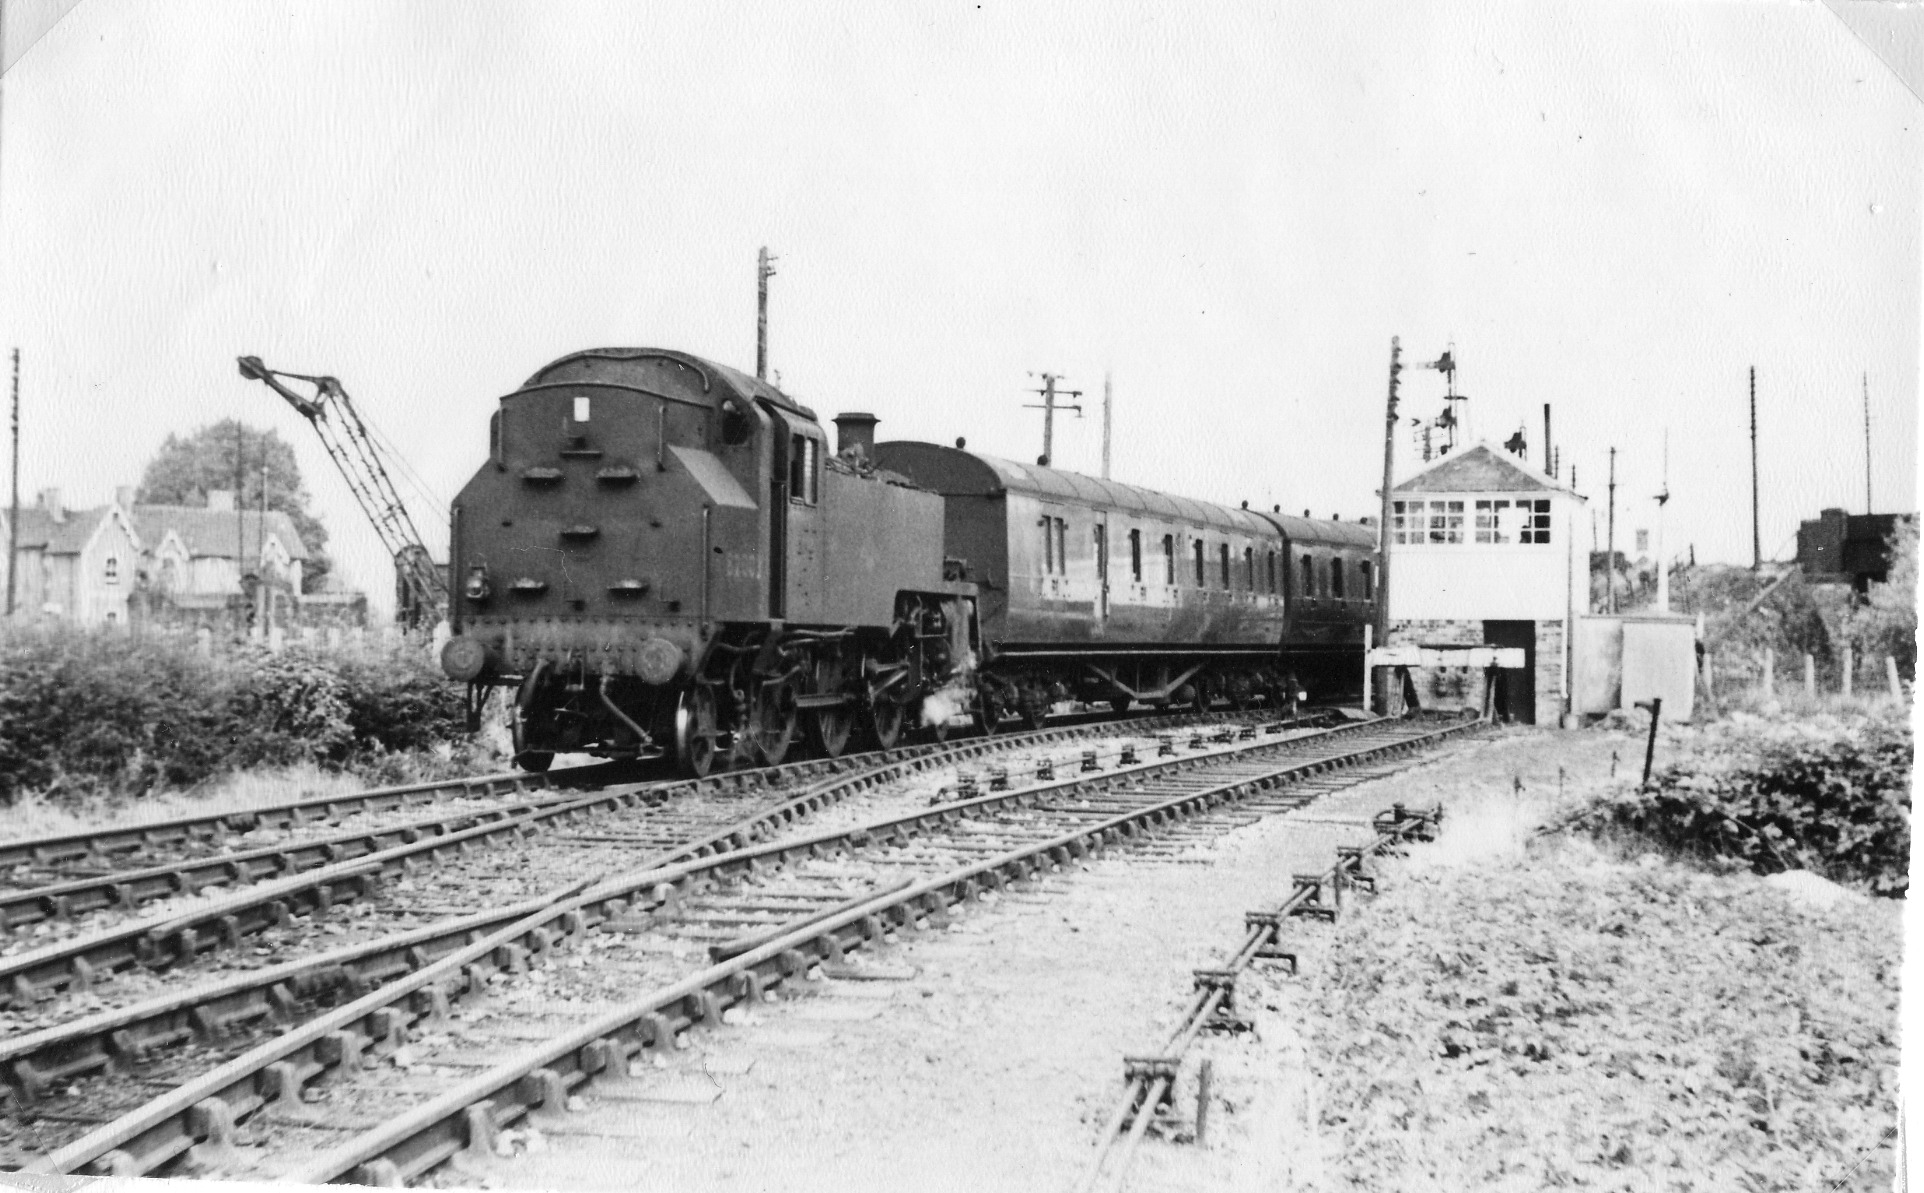 HISTORY: It is believed this was the starting point for Burnham-on-Sea railway